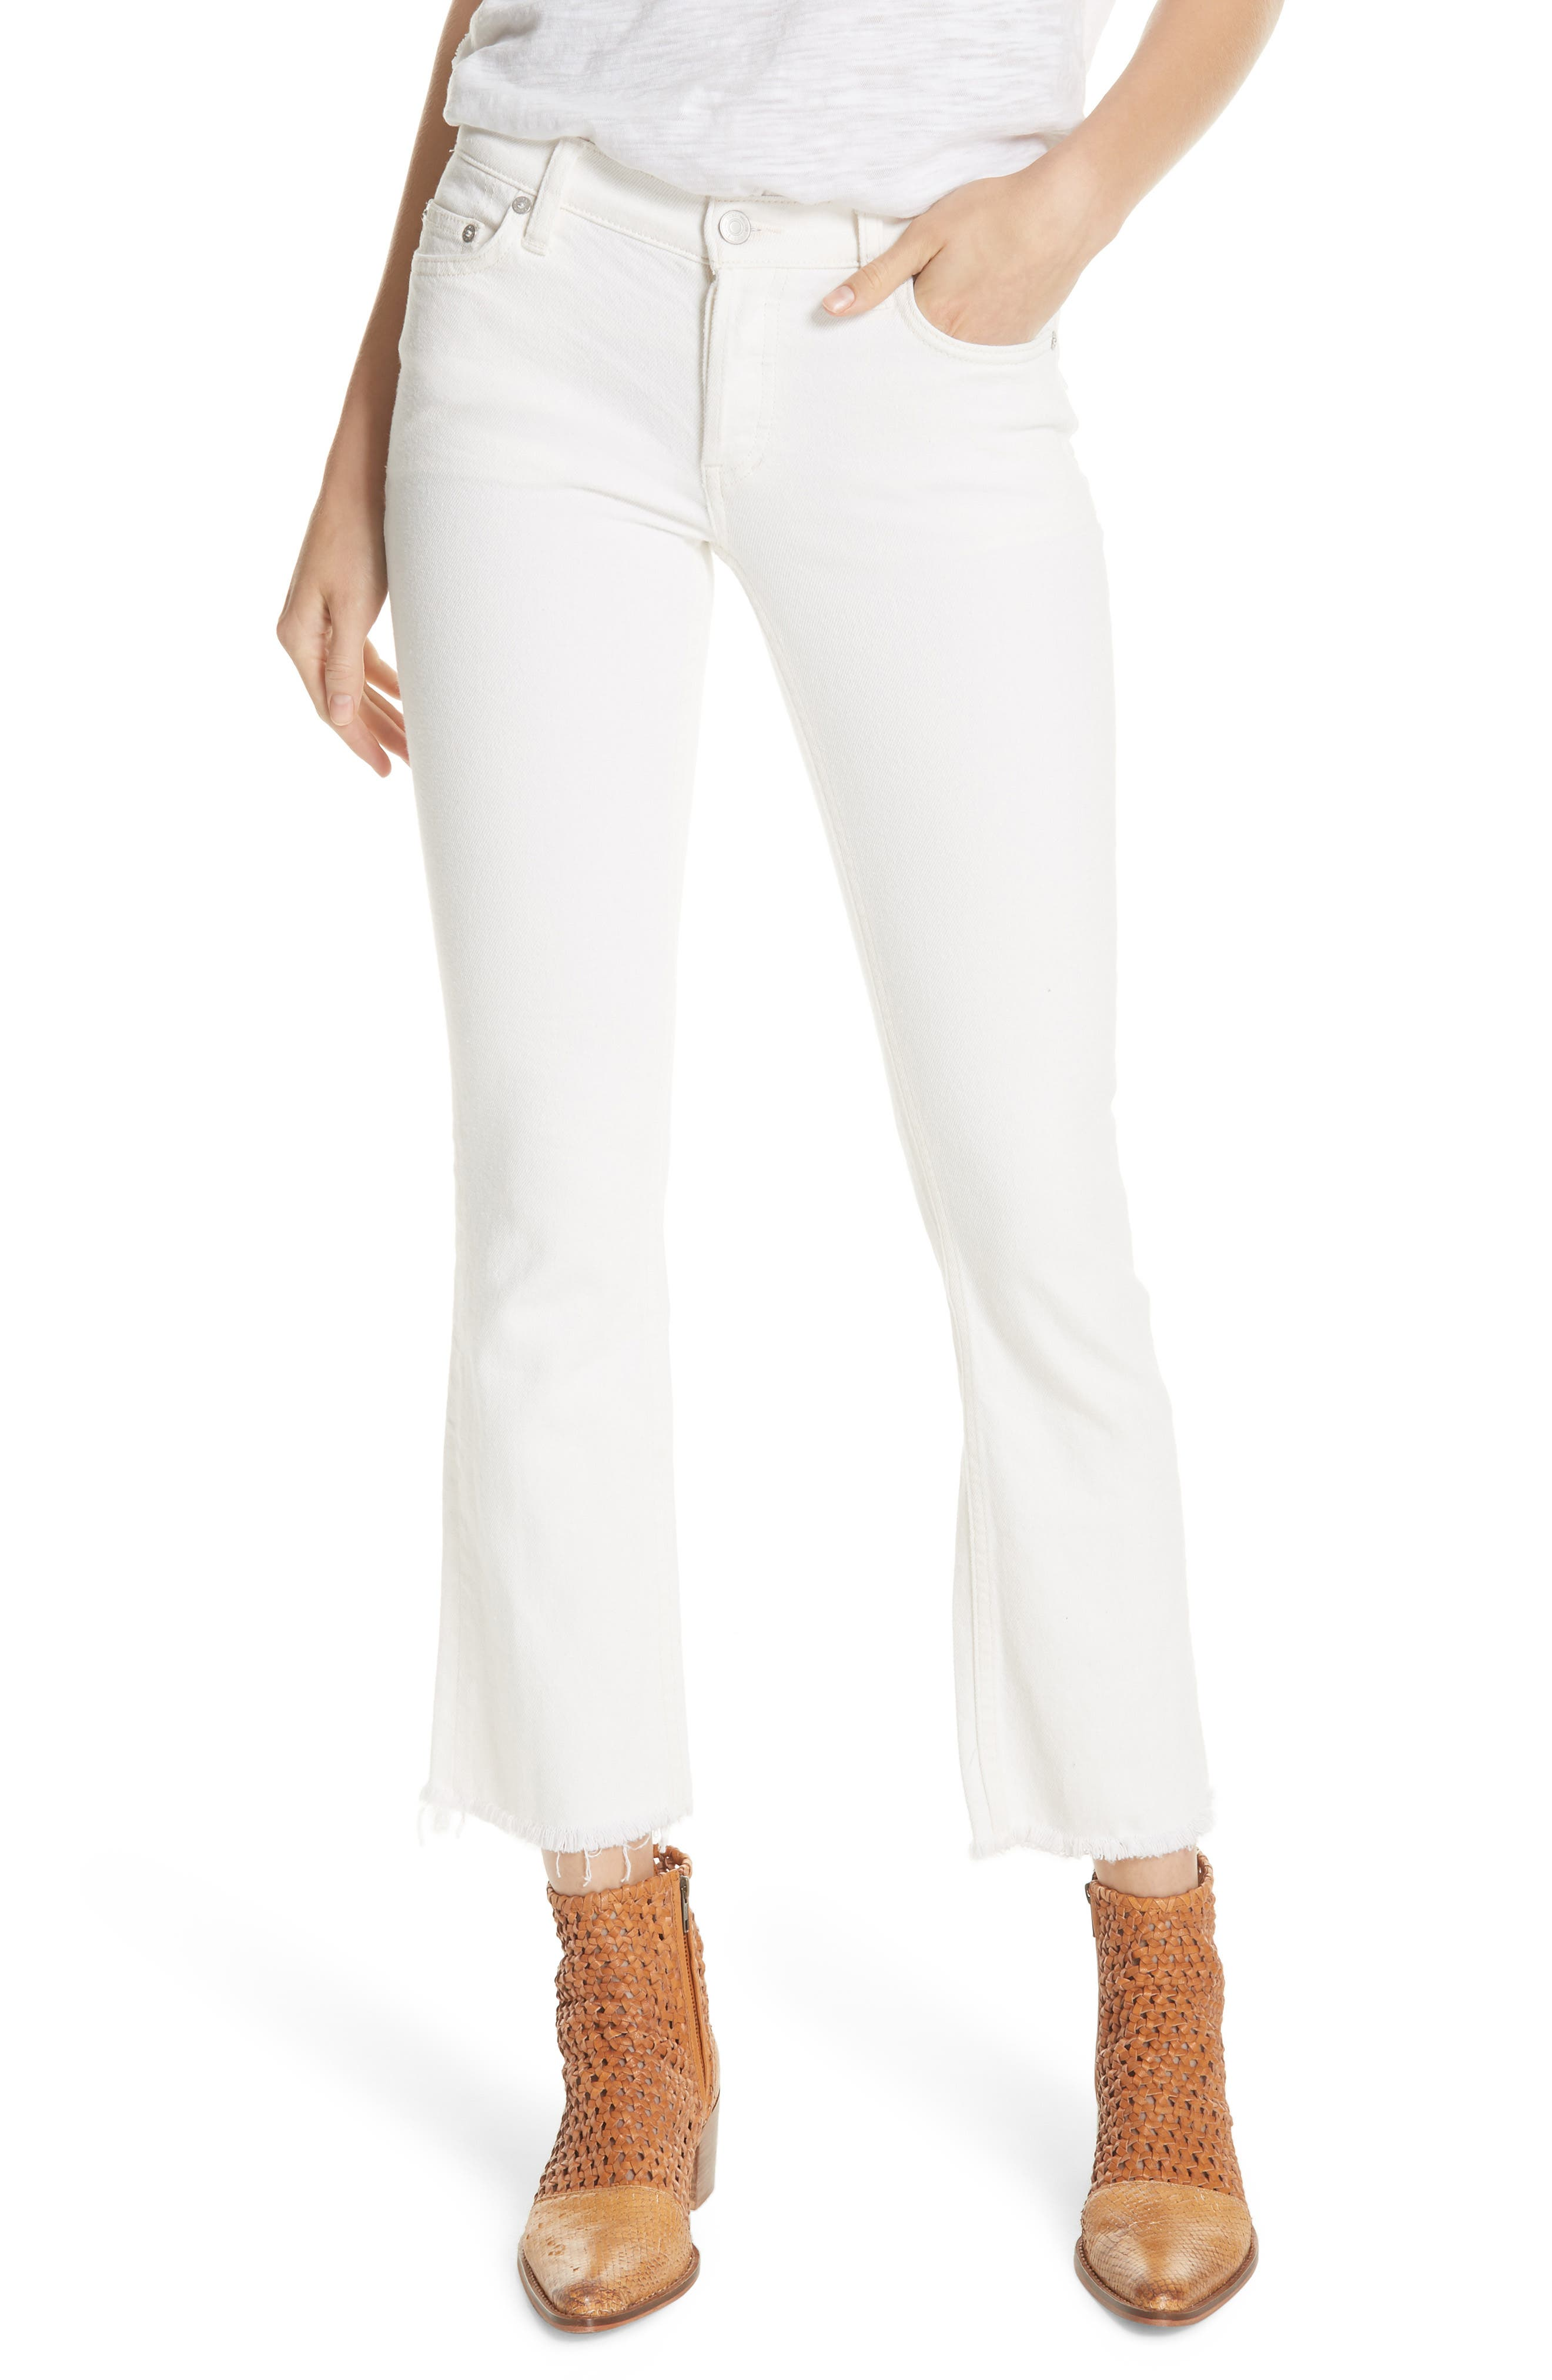 We the Free by Free People Austen Straight Leg Jeans,                             Main thumbnail 1, color,                             100